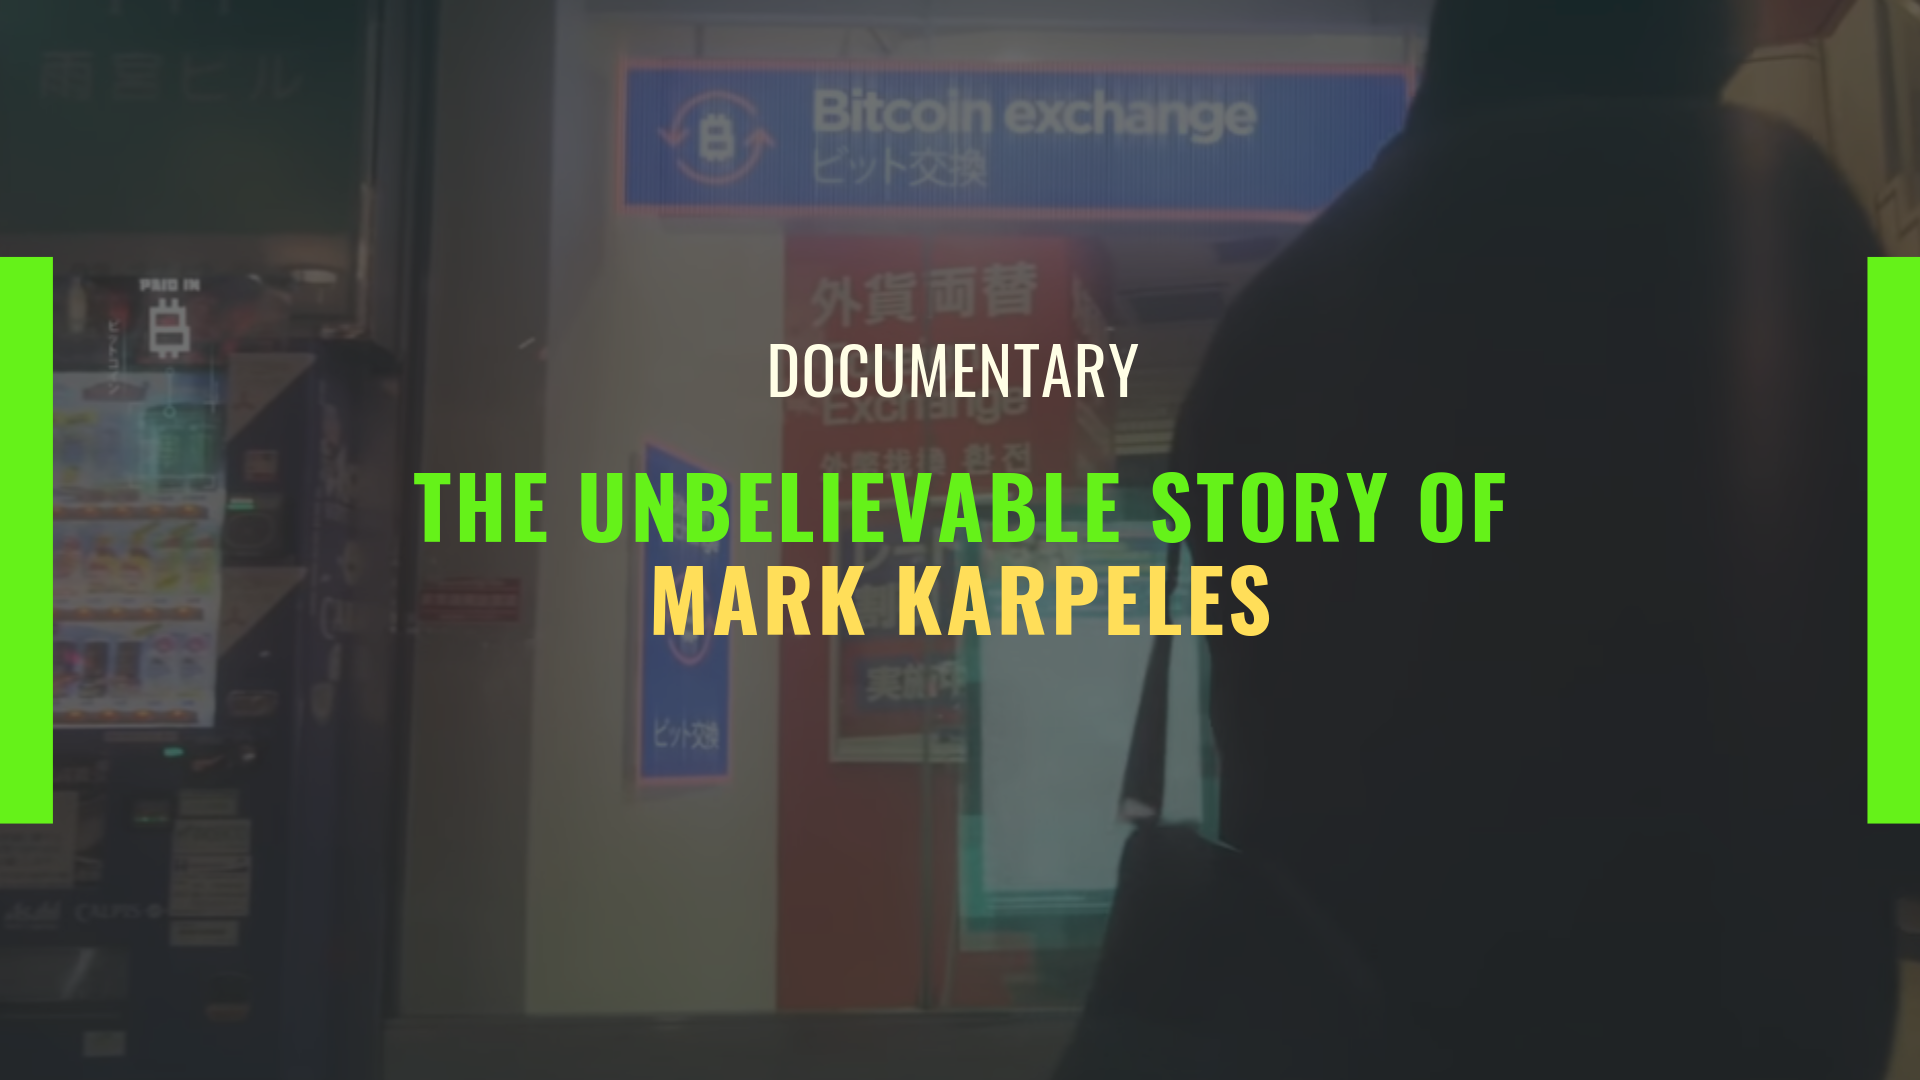 [Documentary] The Unbelievable Story Of Mark Karpeles